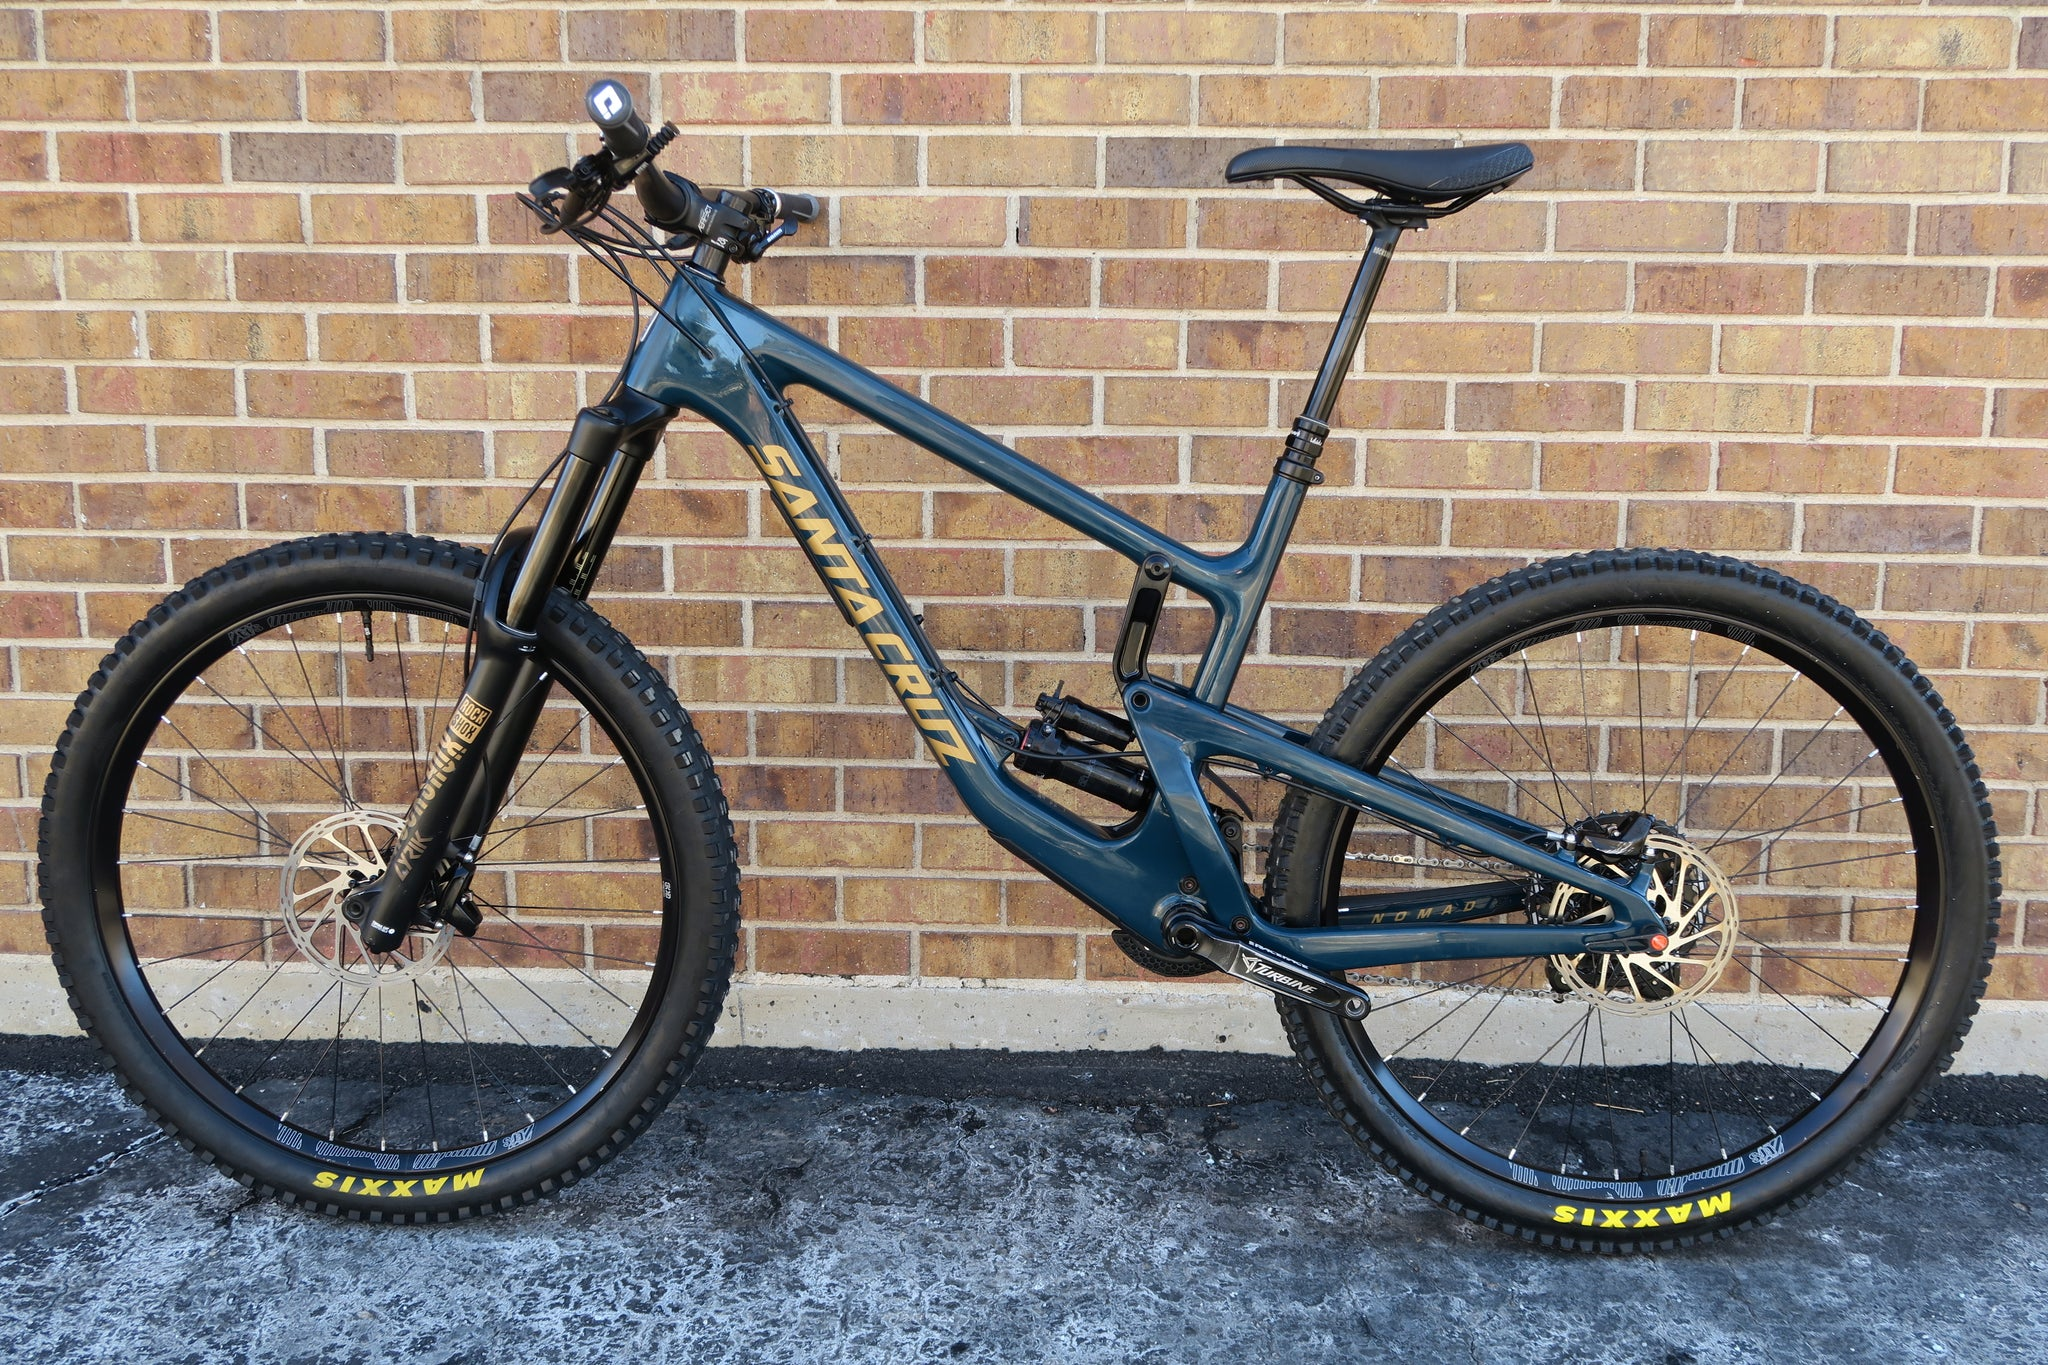 2018 SANTA CRUZ NOMAD C CARBON S KIT 27.5""